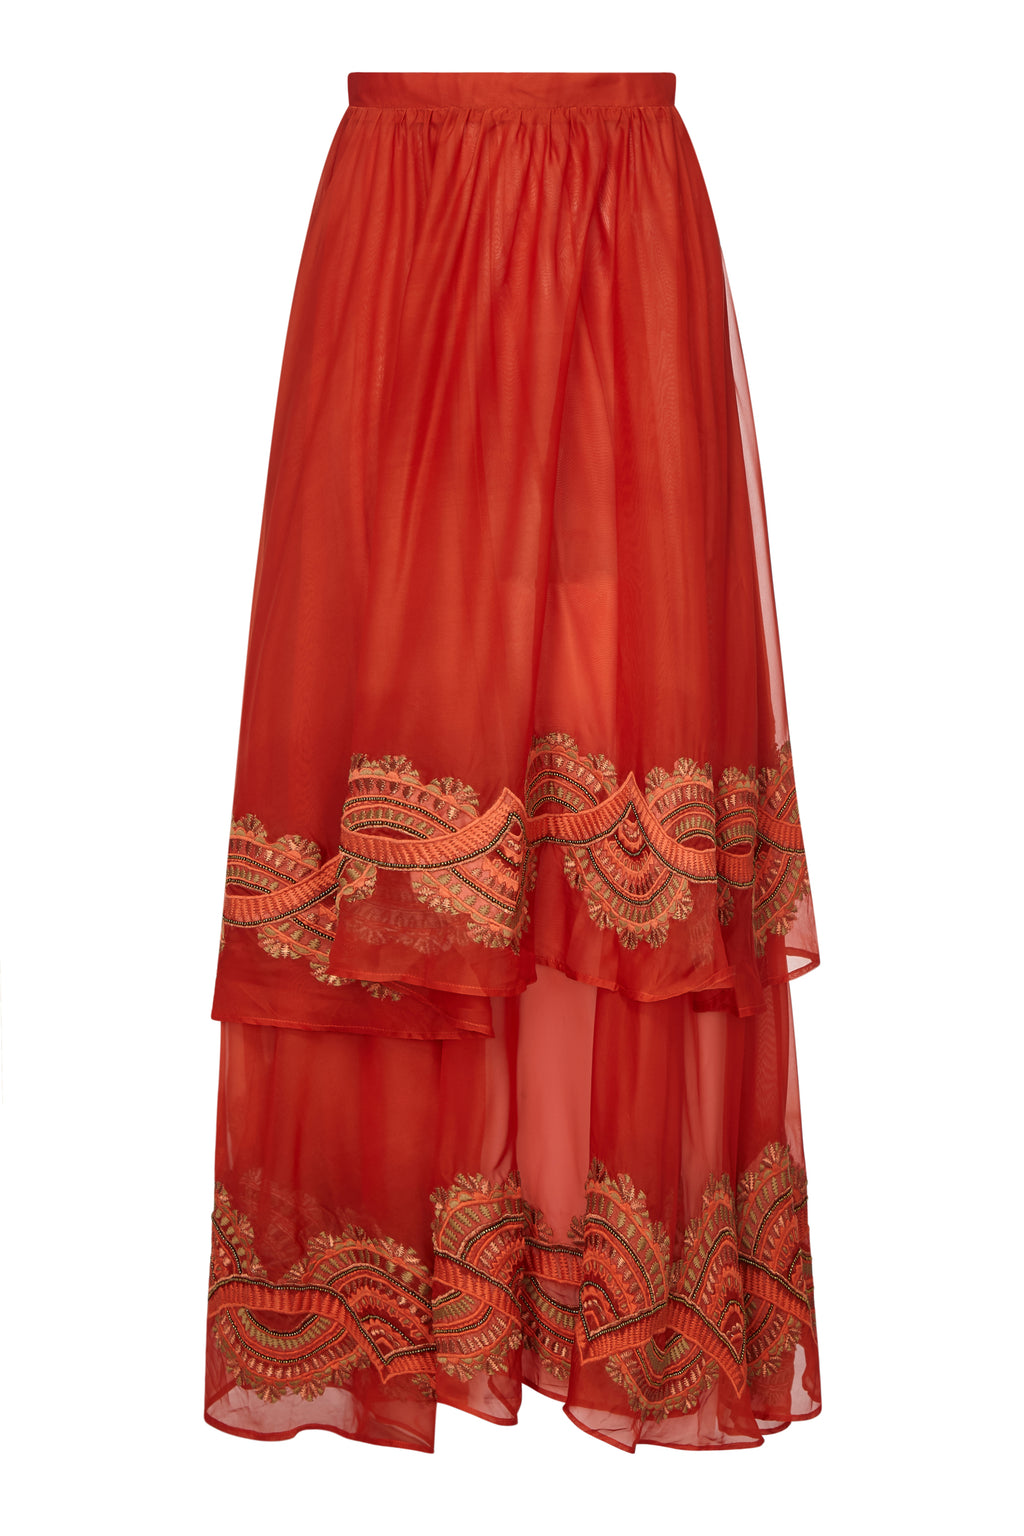 EMPIRE EMBELLISHED MAXI SKIRT